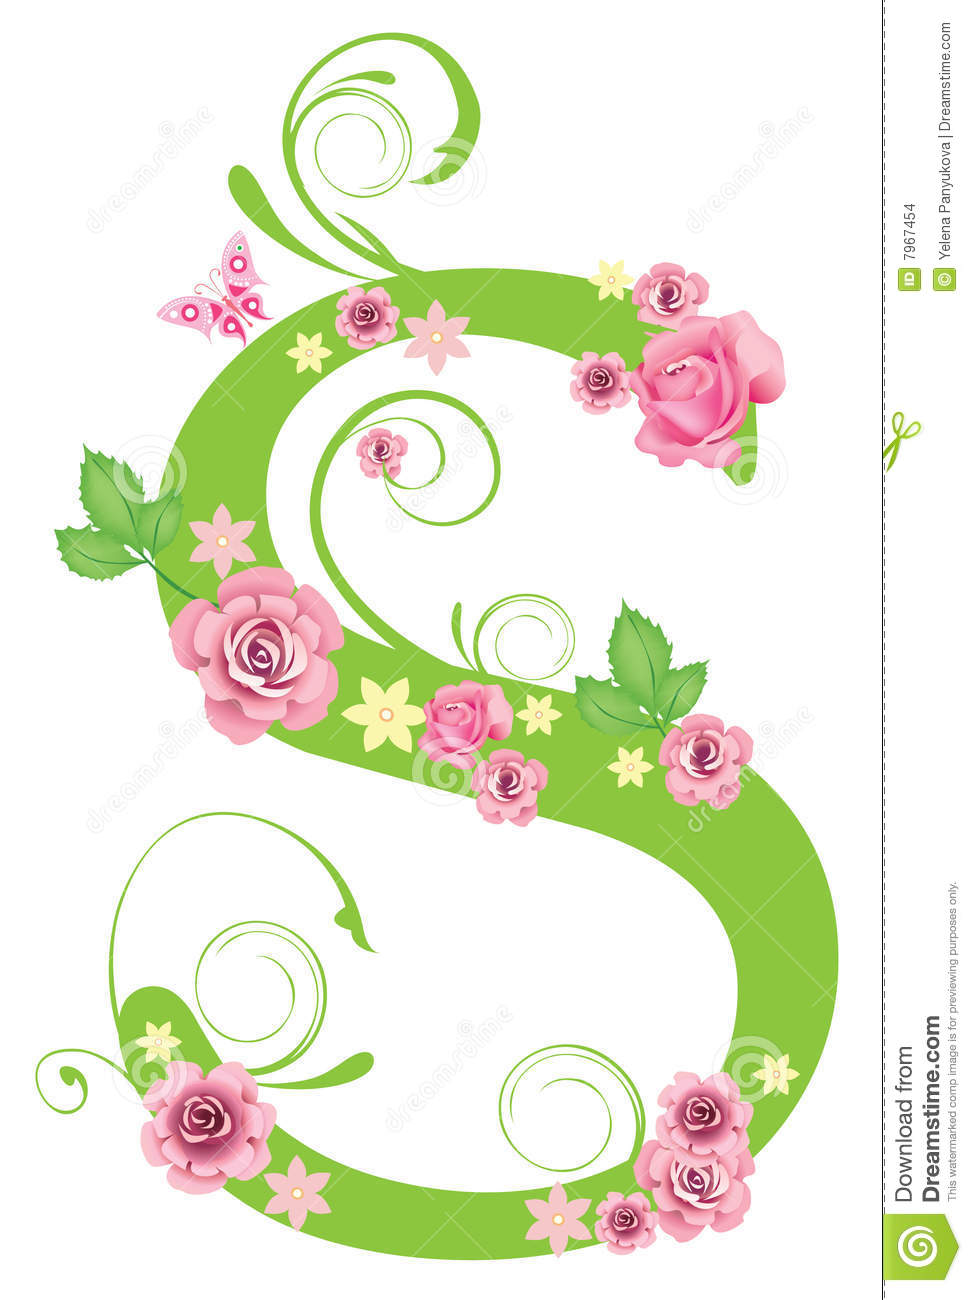 letter s with roses stock images image 7967454. Black Bedroom Furniture Sets. Home Design Ideas